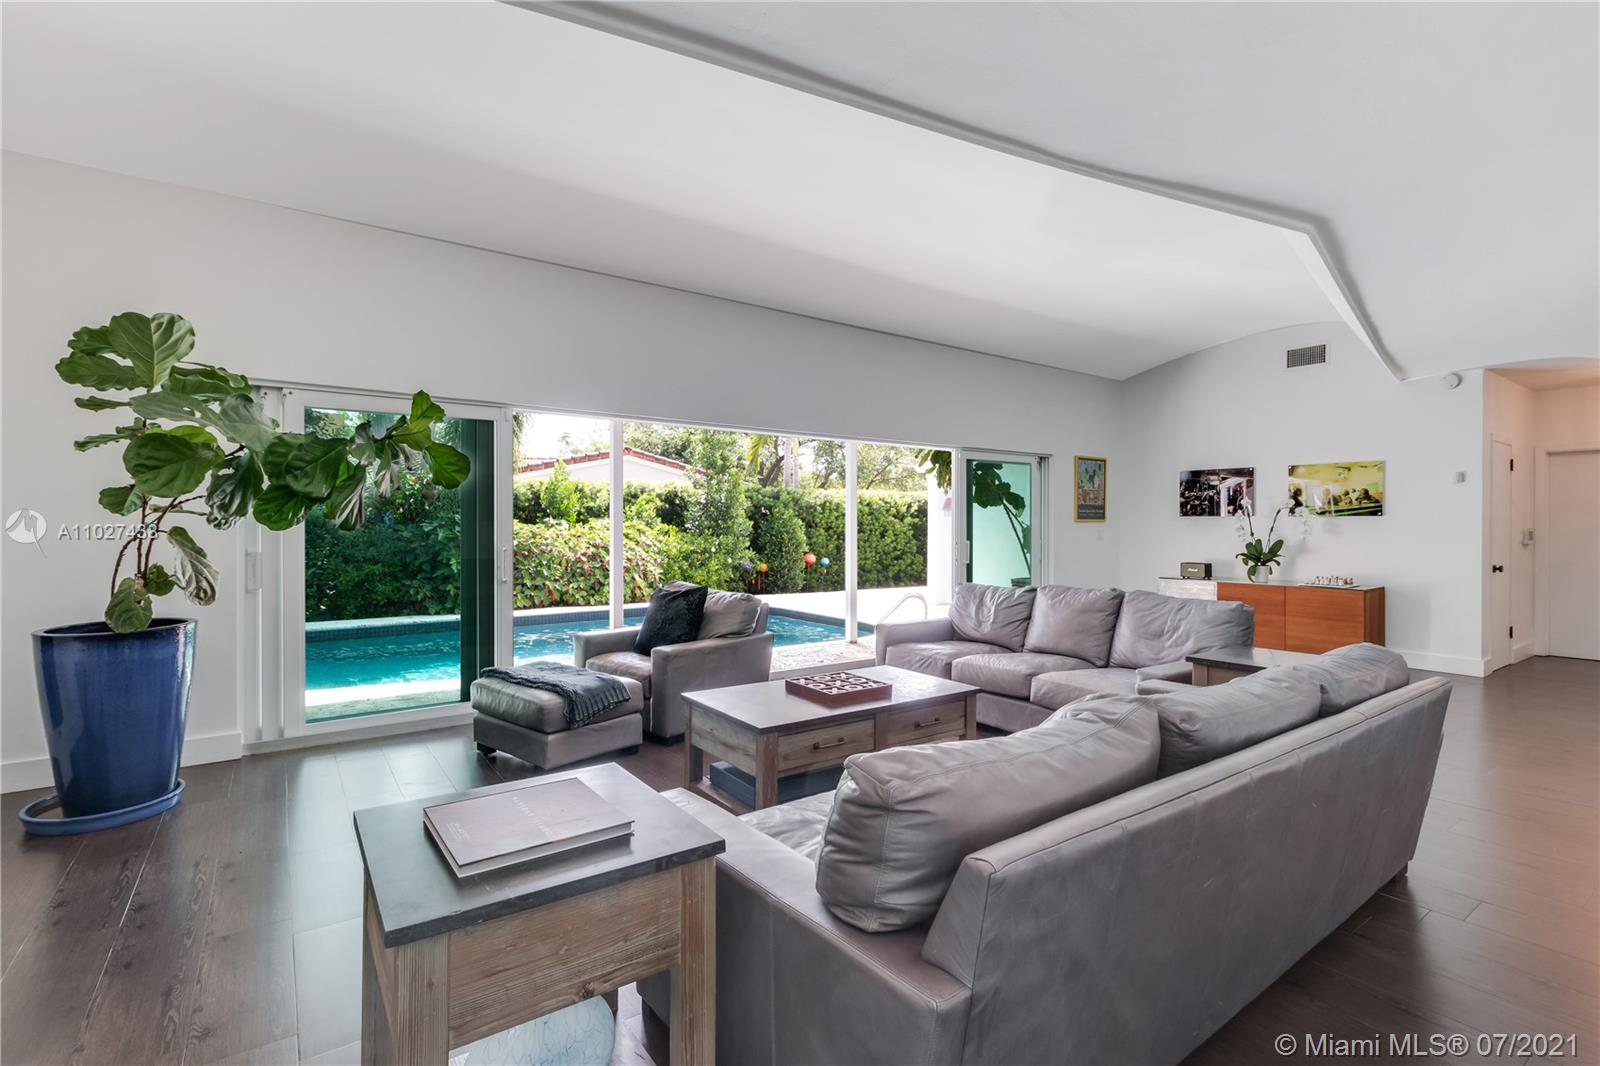 Find your zen in Coconut Grove, a bohemian enclave whose leafy streets and cool ocean breezes have inspired artists and musicians for decades. Newly-renovated and move-in ready, this 4-bed / 3-bath pool home is steps from Biscayne Bay and Sunrise Park - a short bike ride from CocoWalk and South Miami. Features 2-car garage, skylit open kitchen, home office, porcelain floors, hurricane impact glass, and indoor & outdoor dining spaces perfect for families. Master bedroom has a modern bathroom with glass-enclosed shower and large walk-in closet. Cascading glass panels lead to saltwater pool & garden. Minutes to Miami's top public & private schools, marinas, and bike routes. Enjoy poolside BBQs at home or savor Coconut Grove's trendy restaurants, movie theater, farmers market & arts festivals.